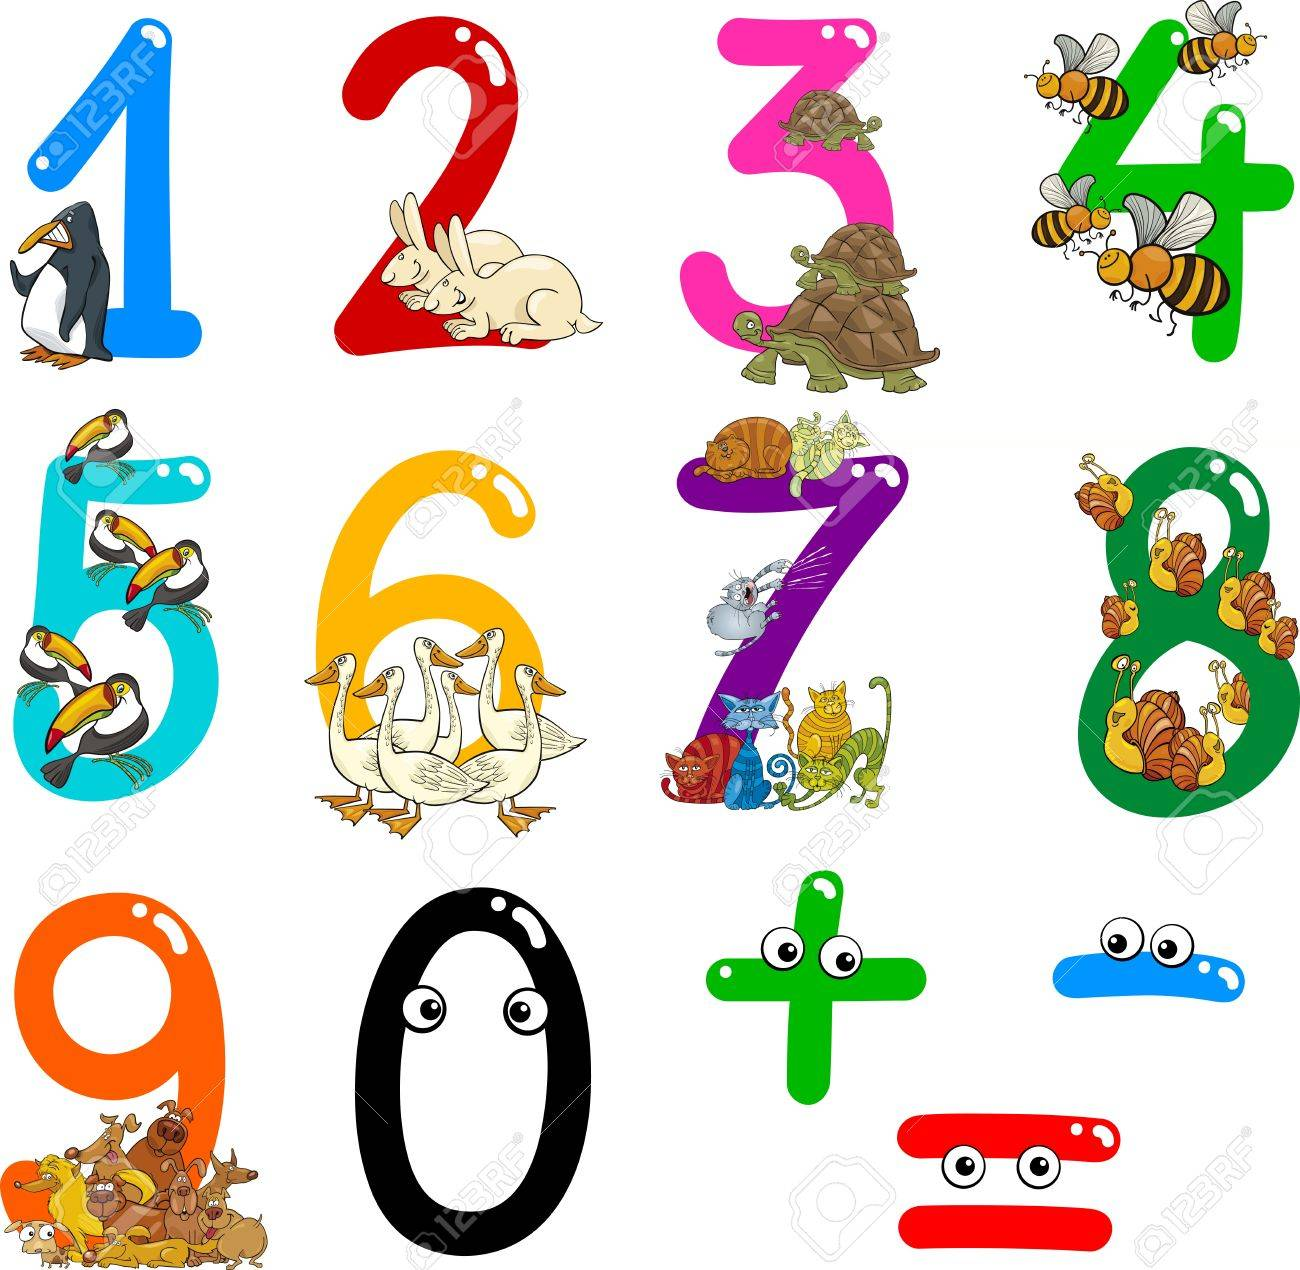 cartoon illustration of numbers from zero to nine with animals Stock Vector - 13717693